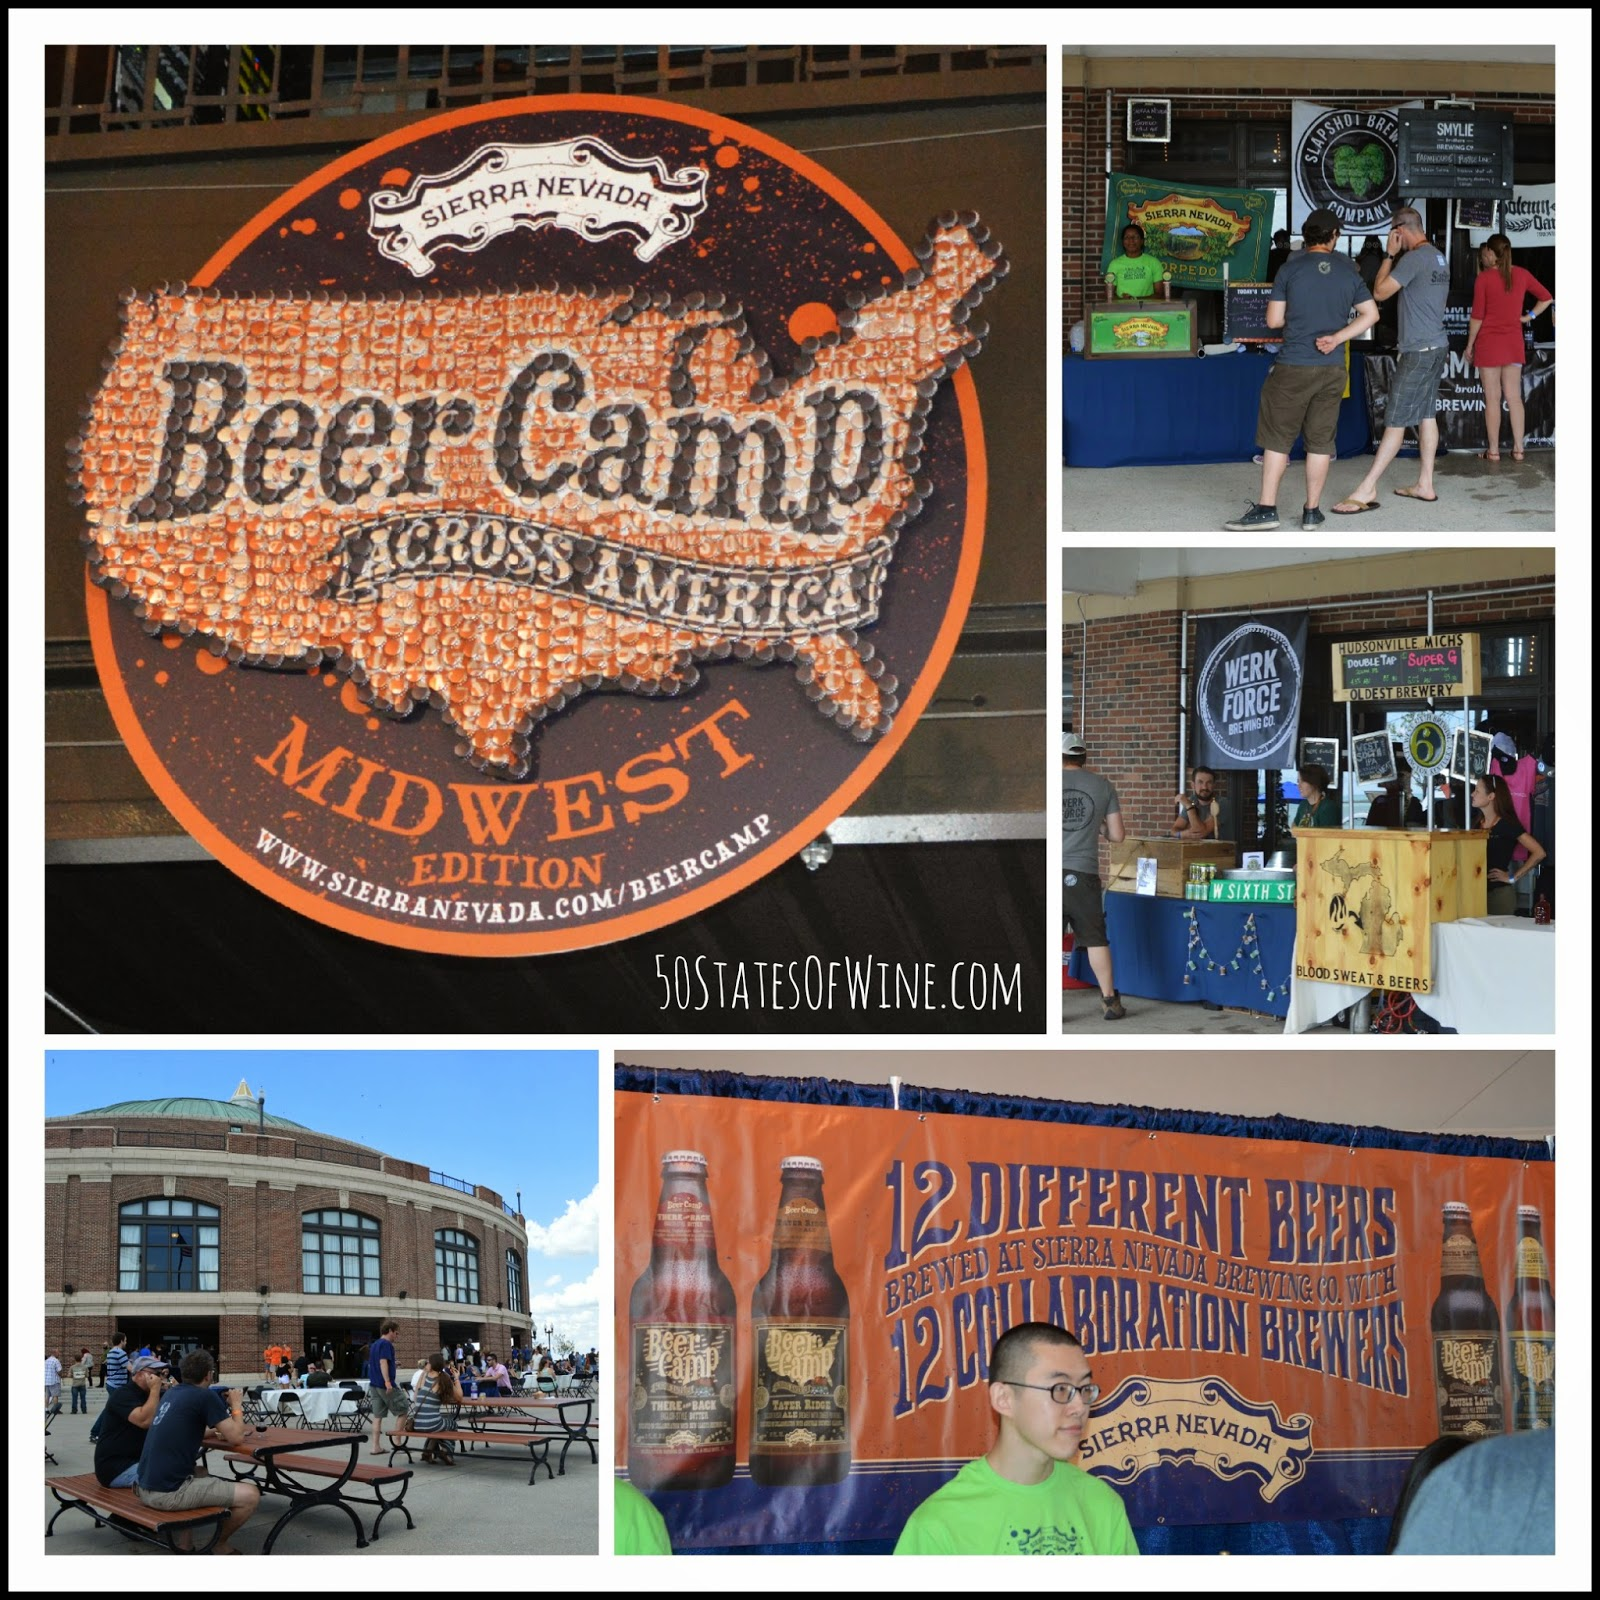 Beer Camp Across America - Midwest Edition